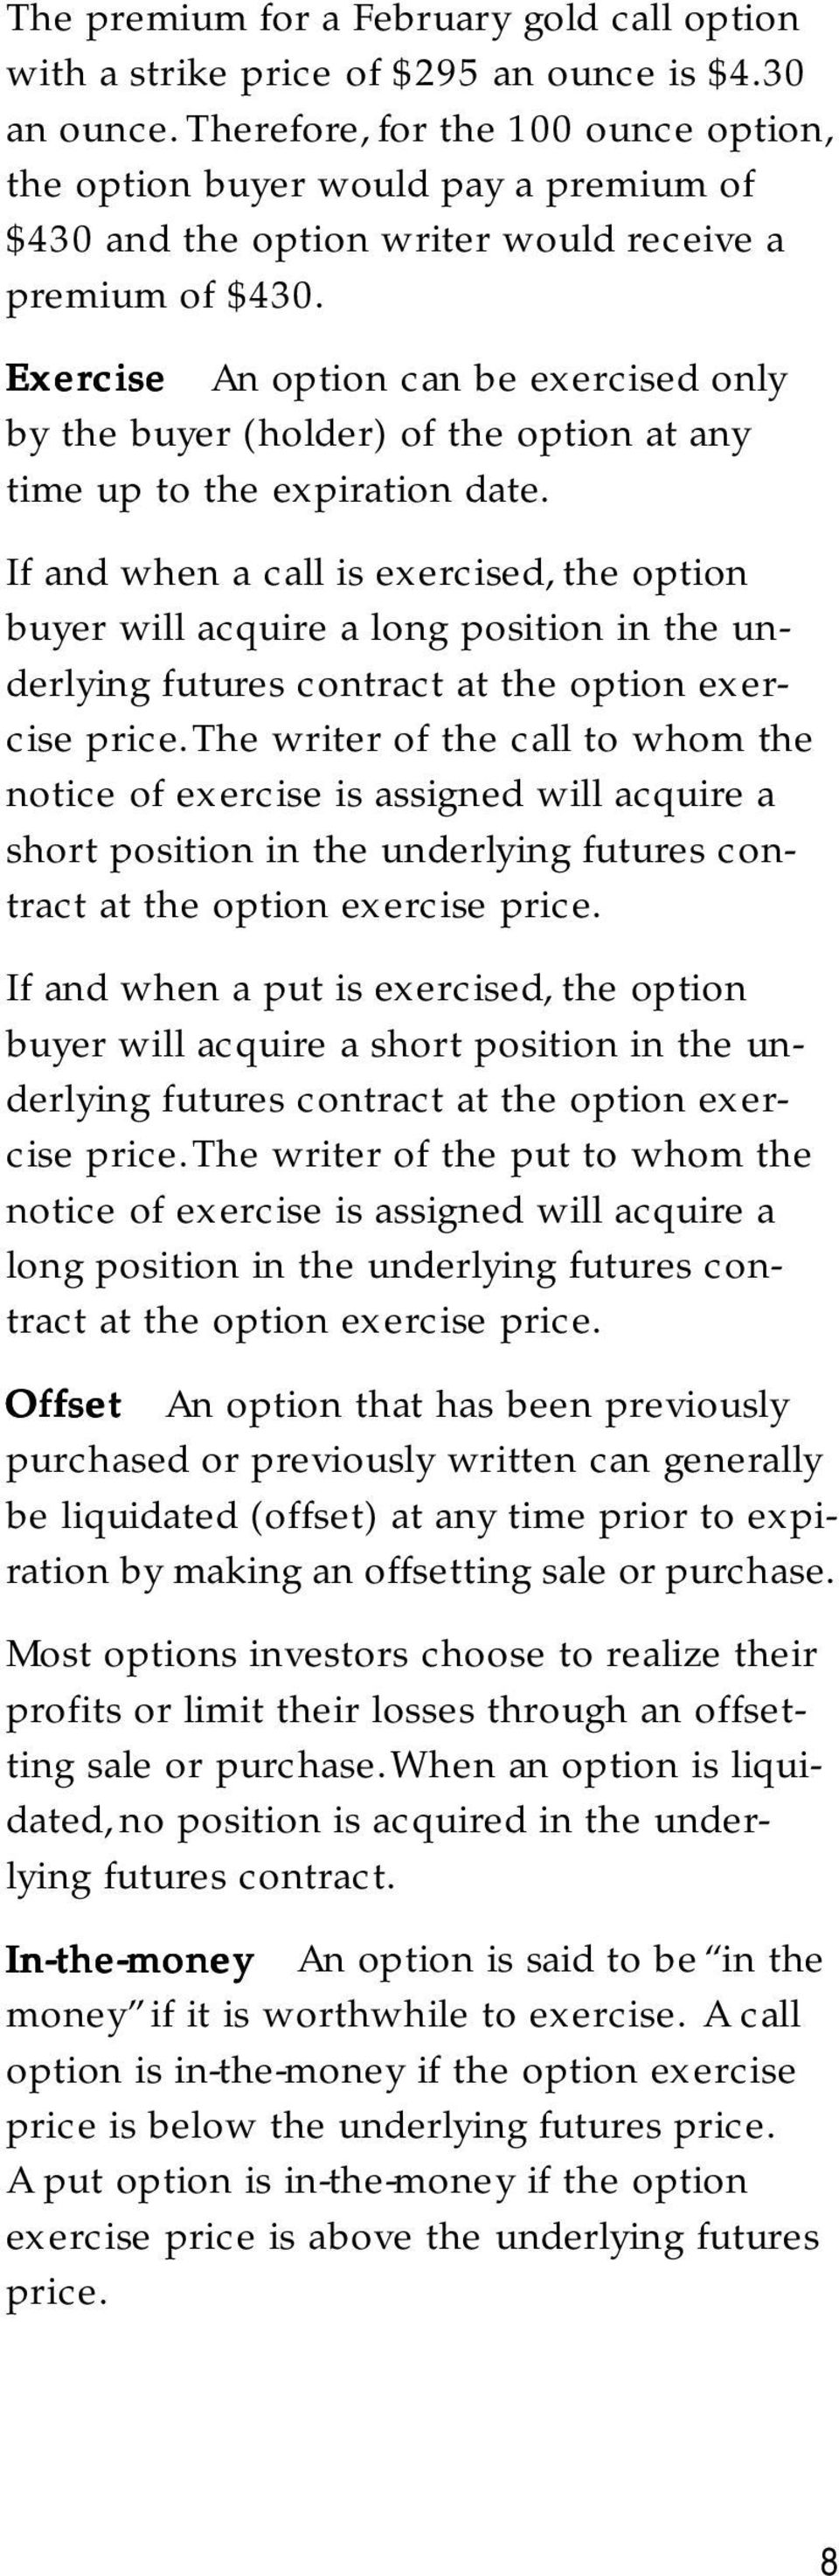 Exer ercise An option can be exercised only by the buyer (holder) of the option at any time up to the expiration date.